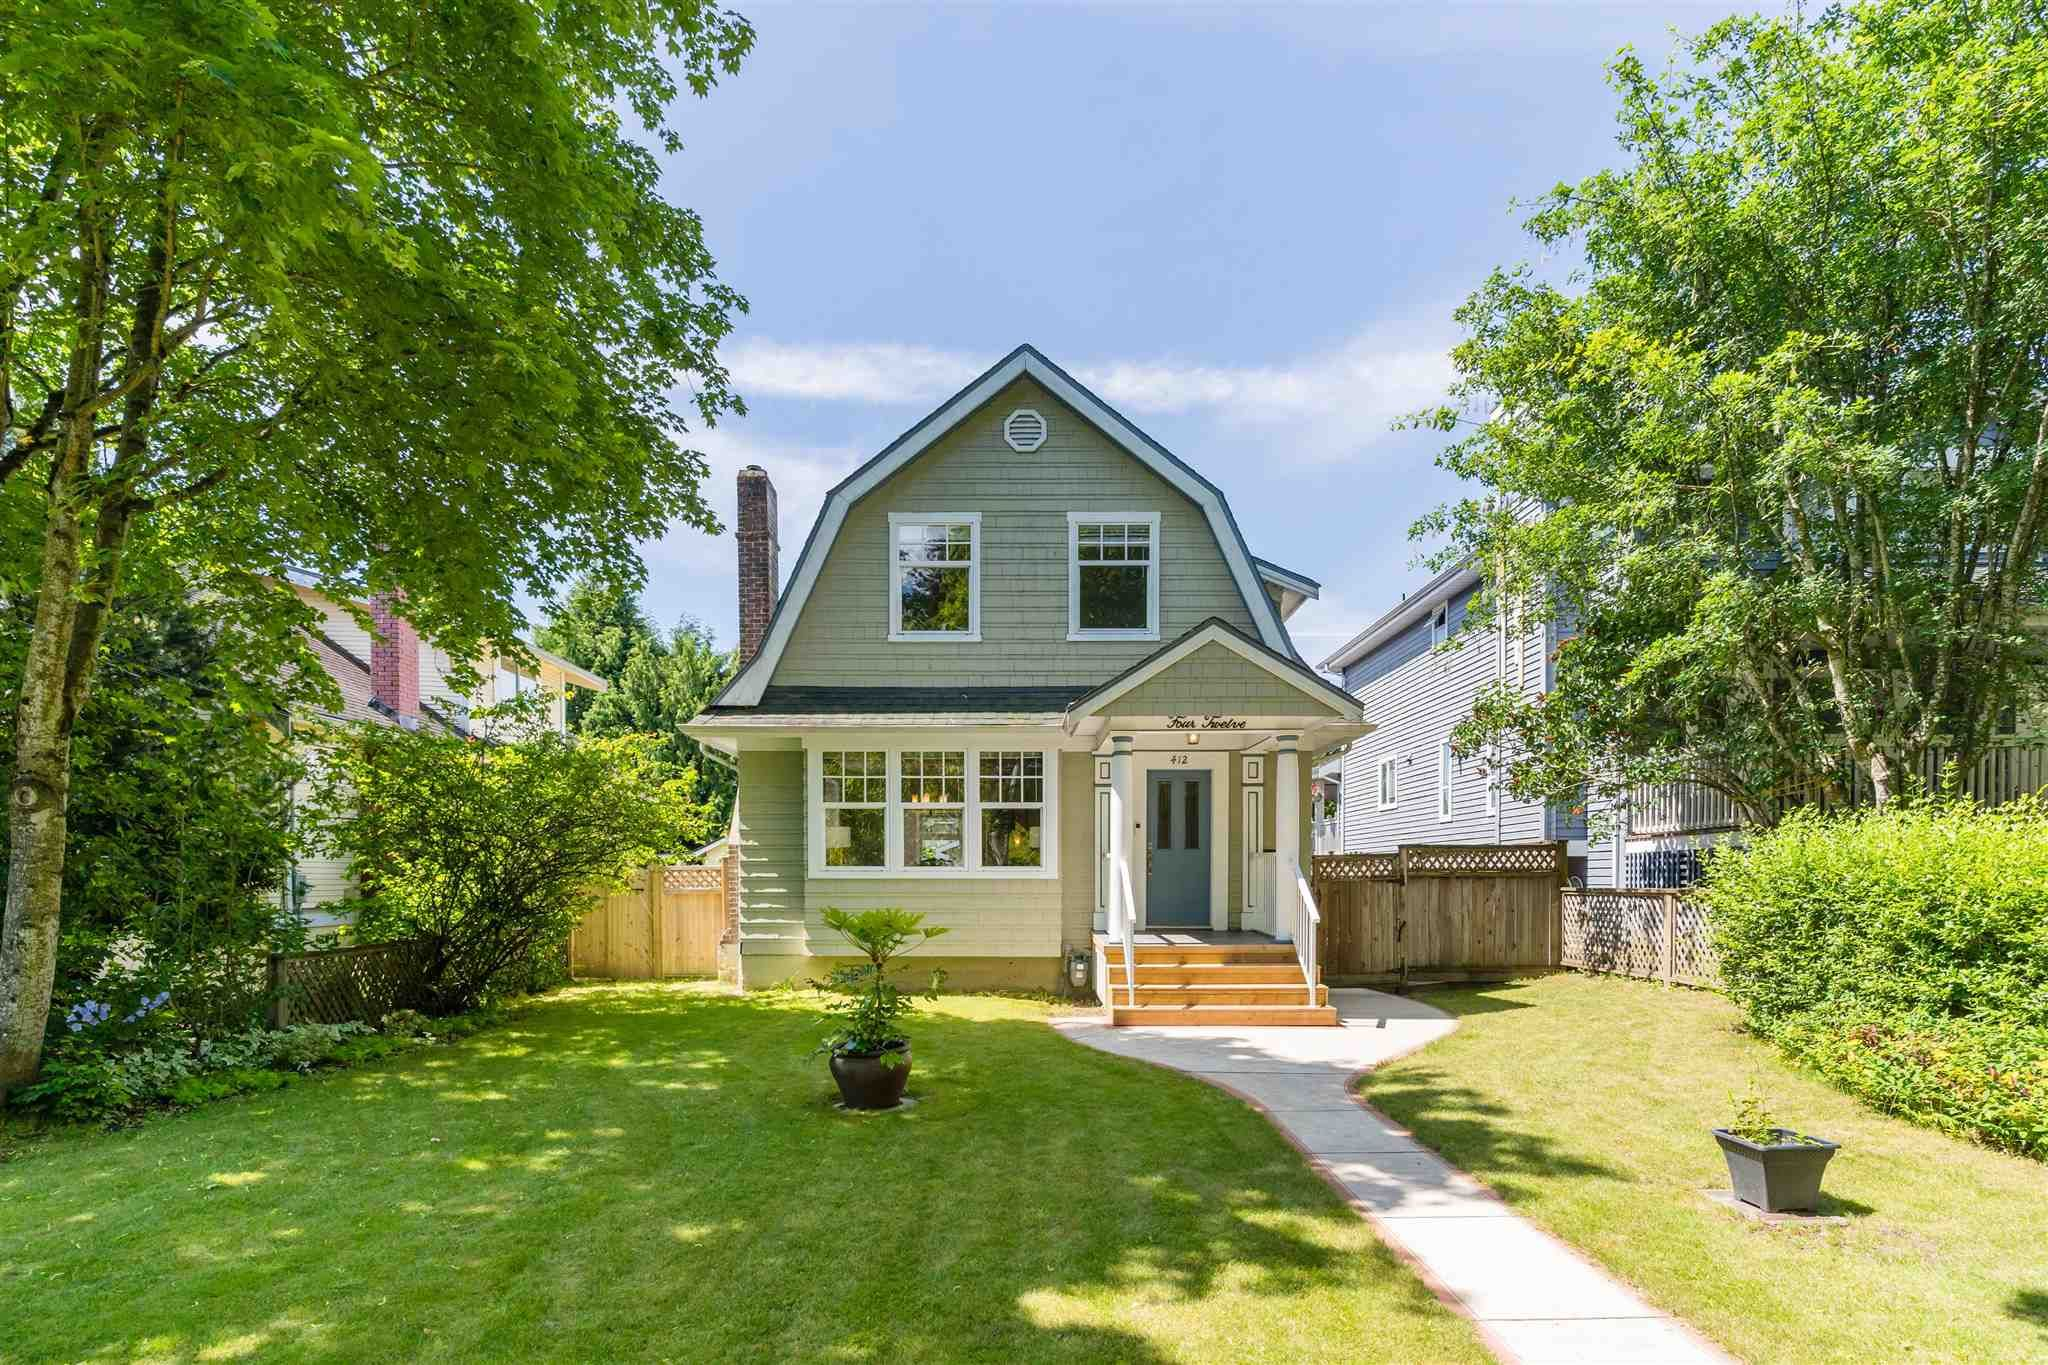 Photo 2: Photos: 412 FIFTH STREET in New Westminster: Queens Park House for sale : MLS®# R2594885